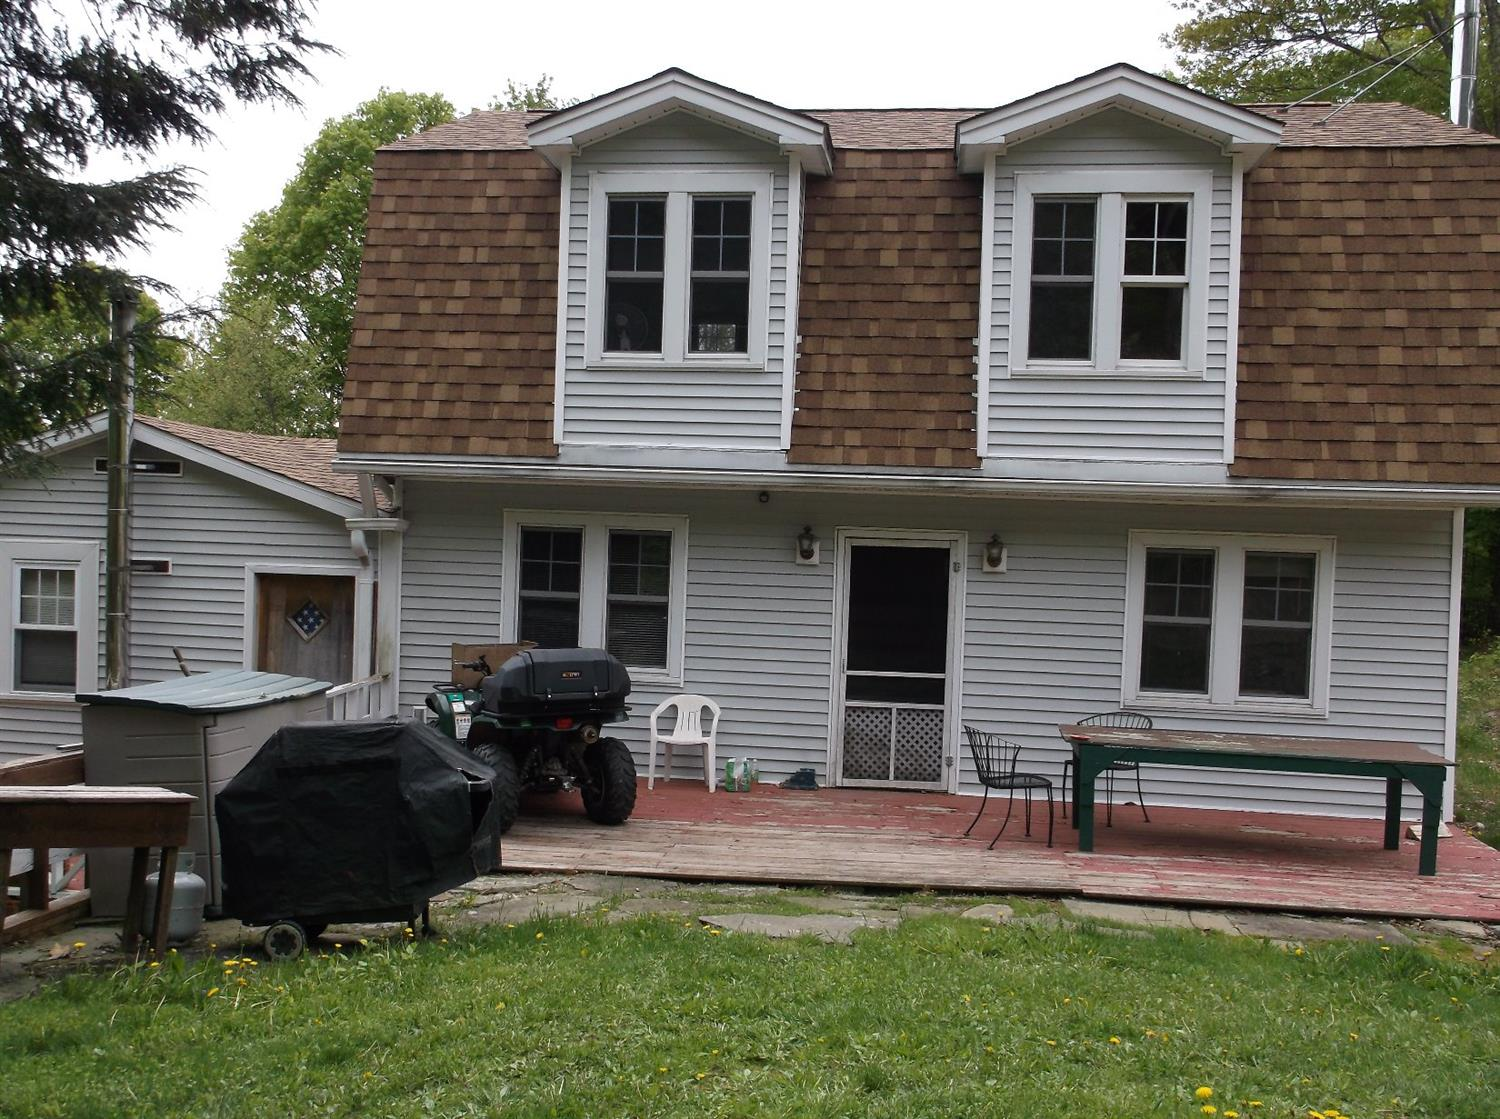 190,000 - (Was $224,900)3 Bedrooms, 2 Baths10.25 AcresMountain-Top ViewsAdjacent to NYS Land